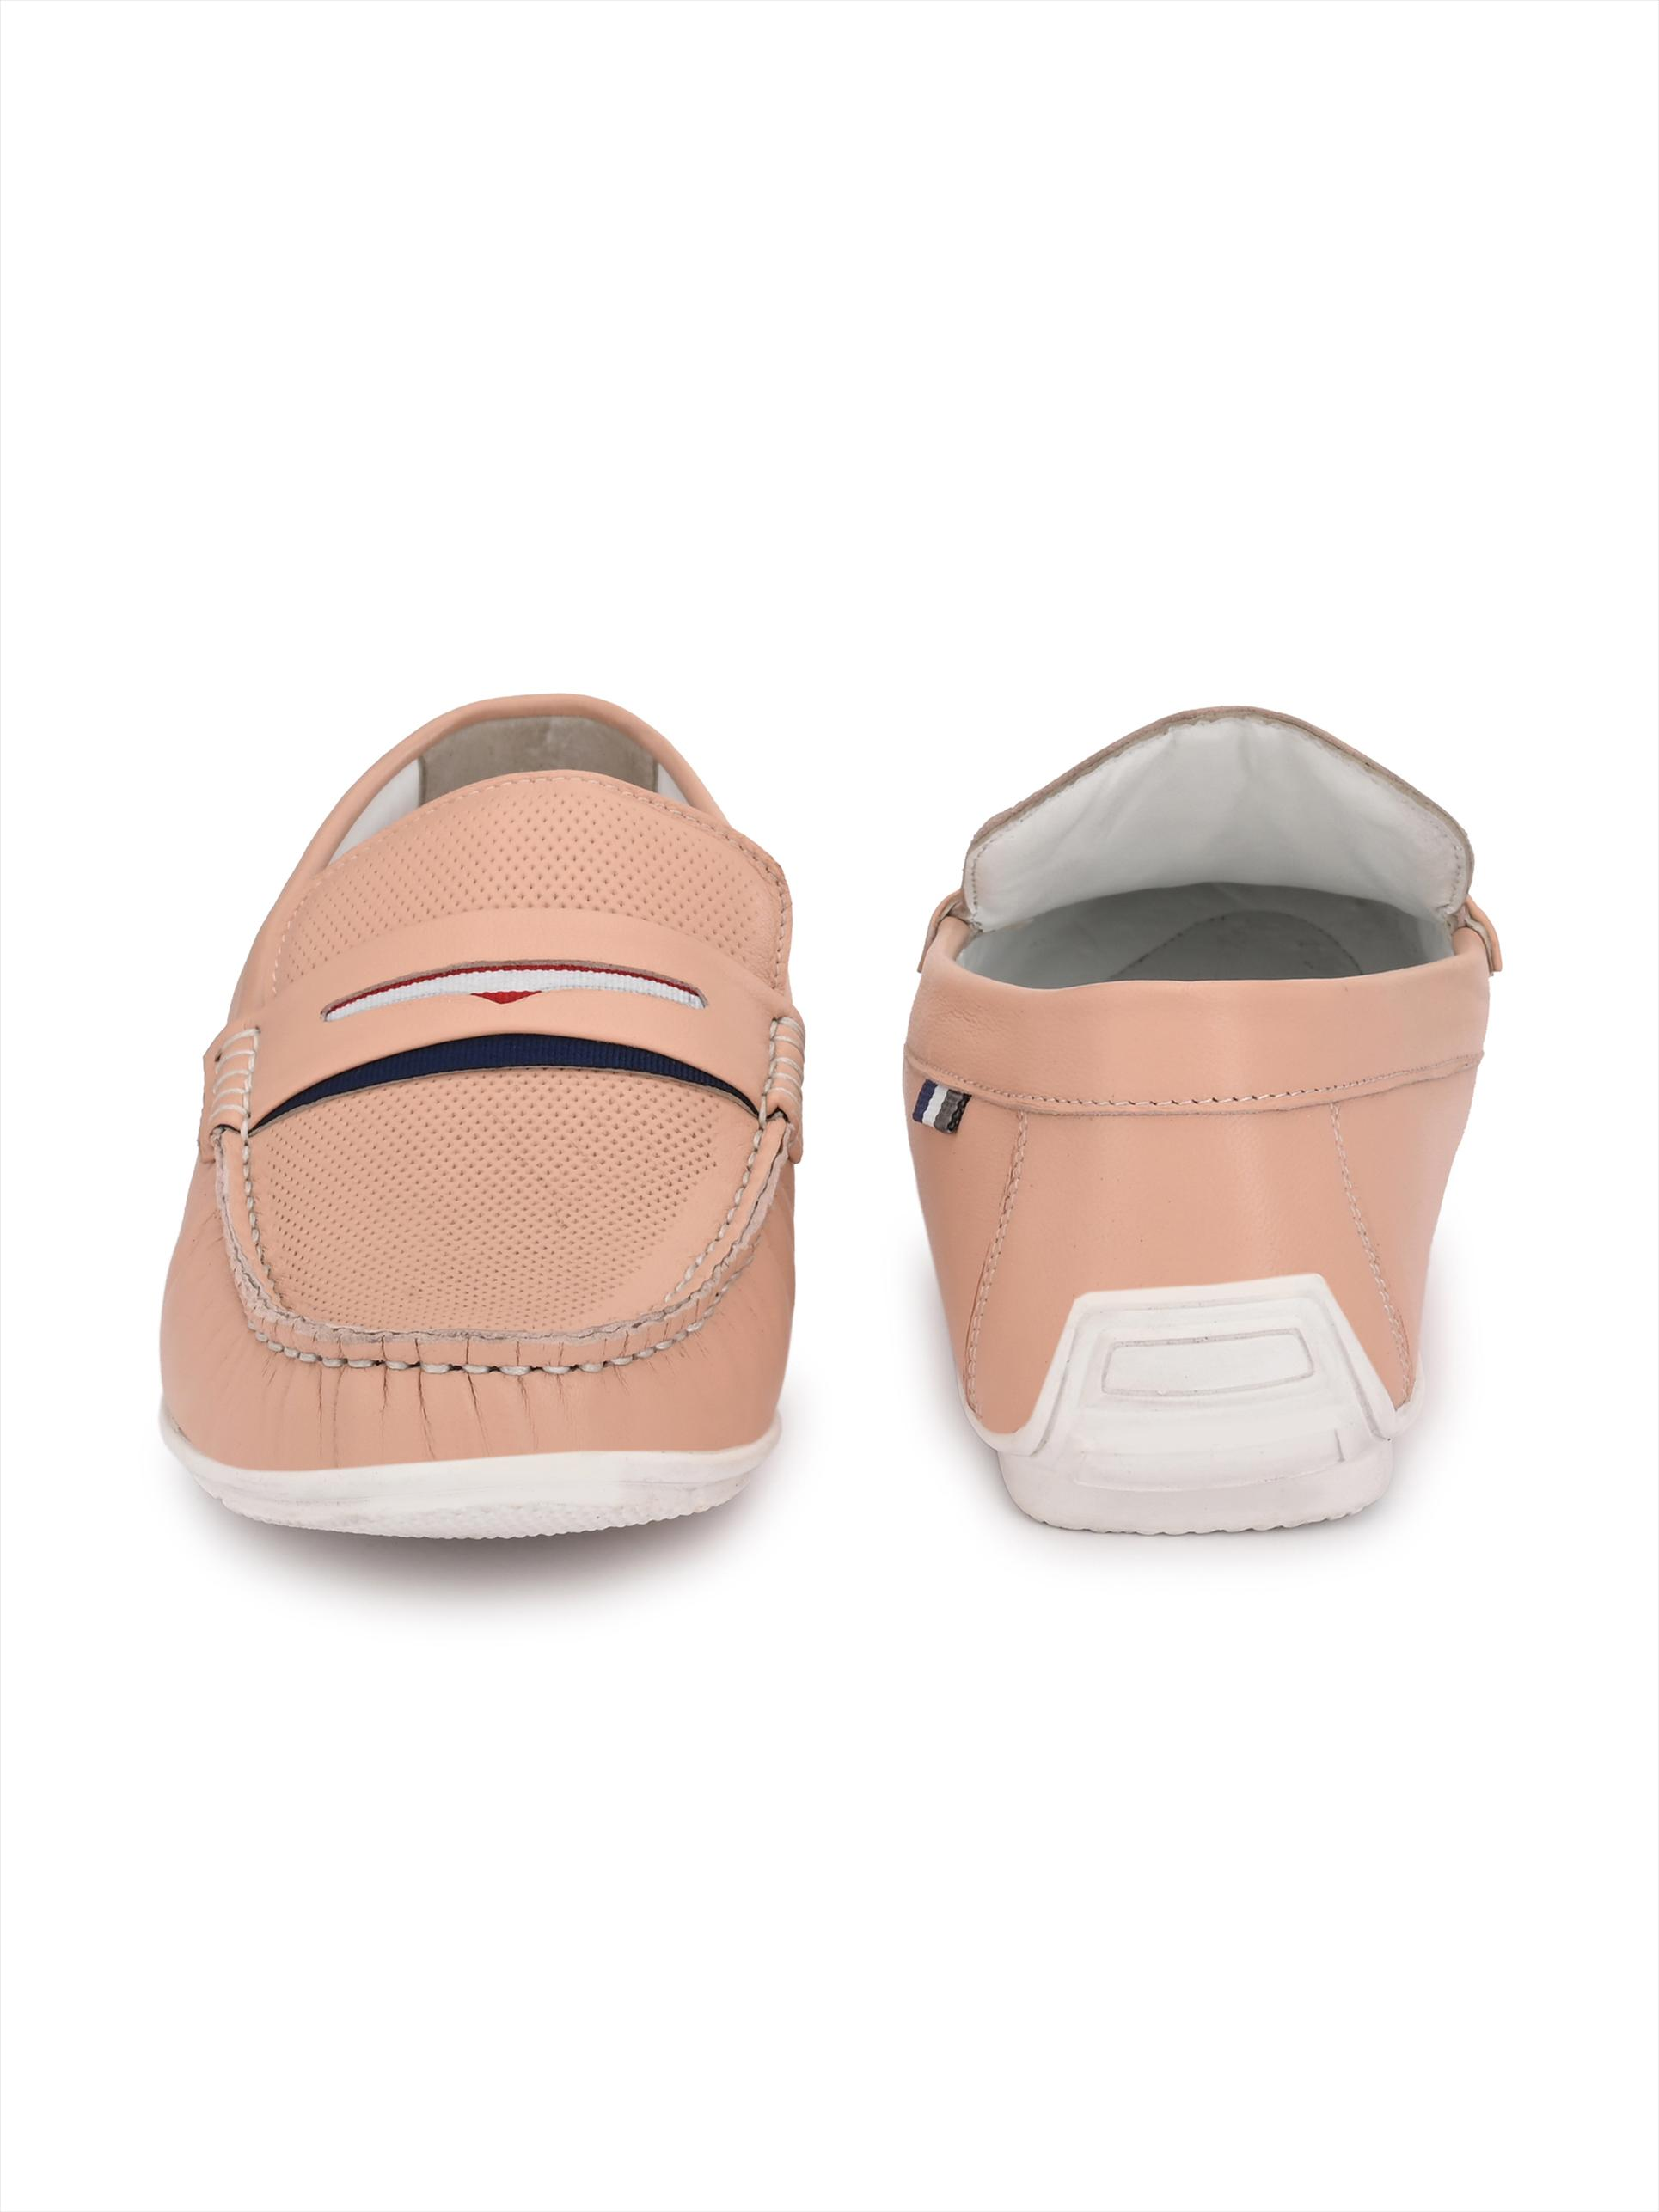 Hitz | Hitz Pink Genuine Leather Casual Loafers For Men with Slip-On Fastening